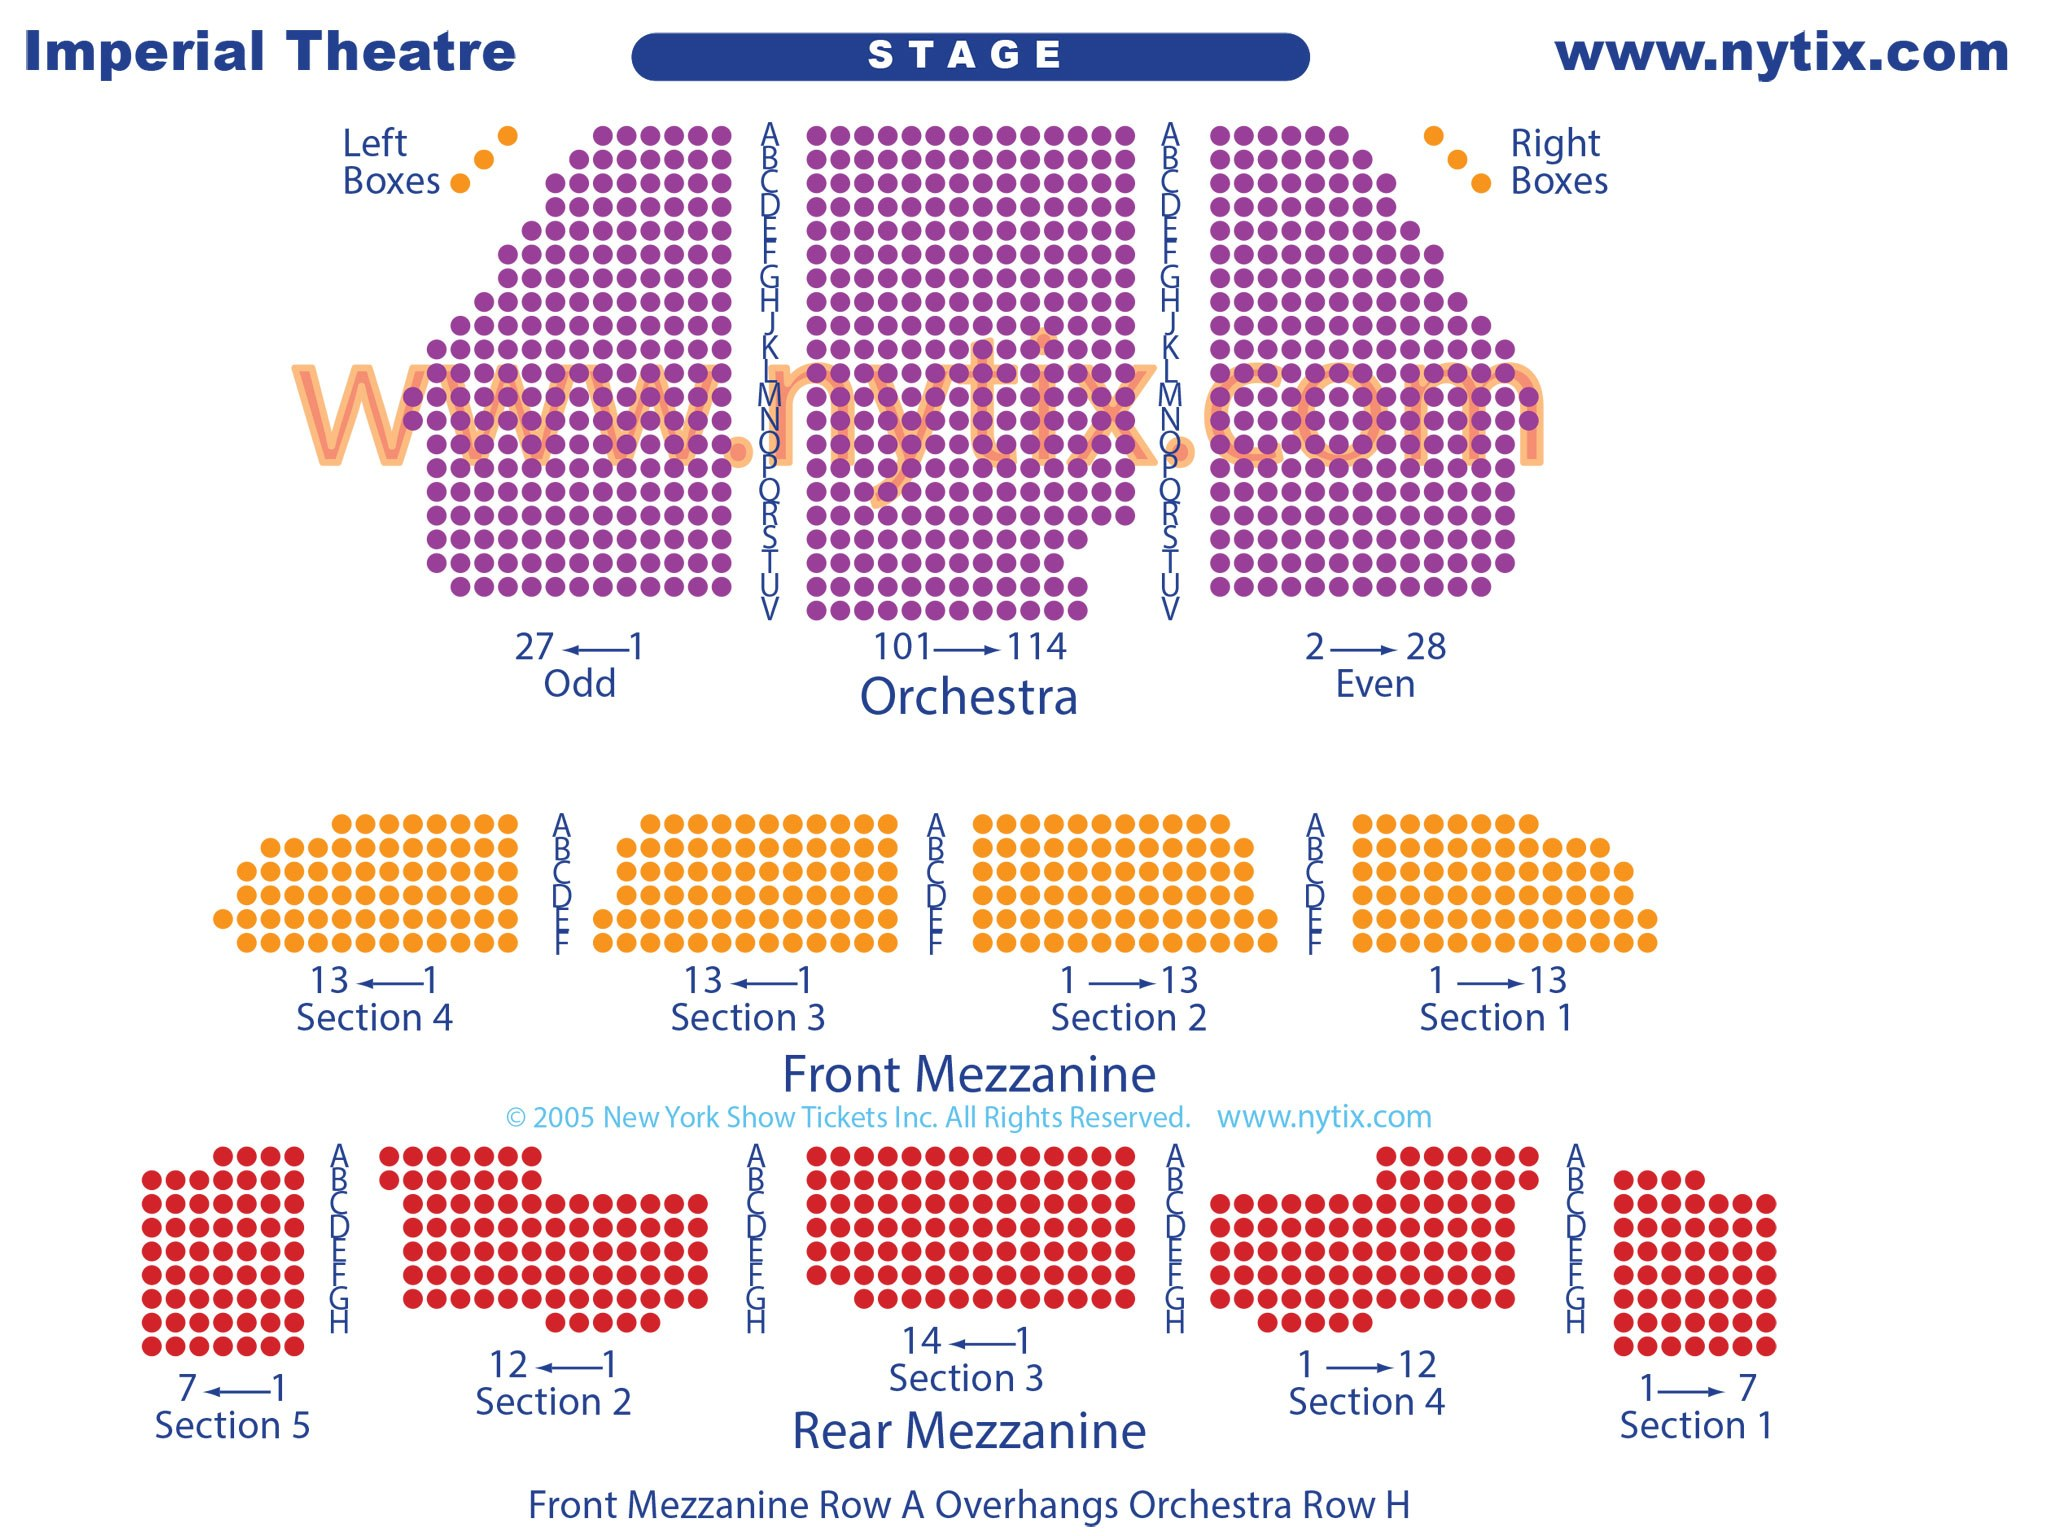 Imperial Theatre Seating Chart